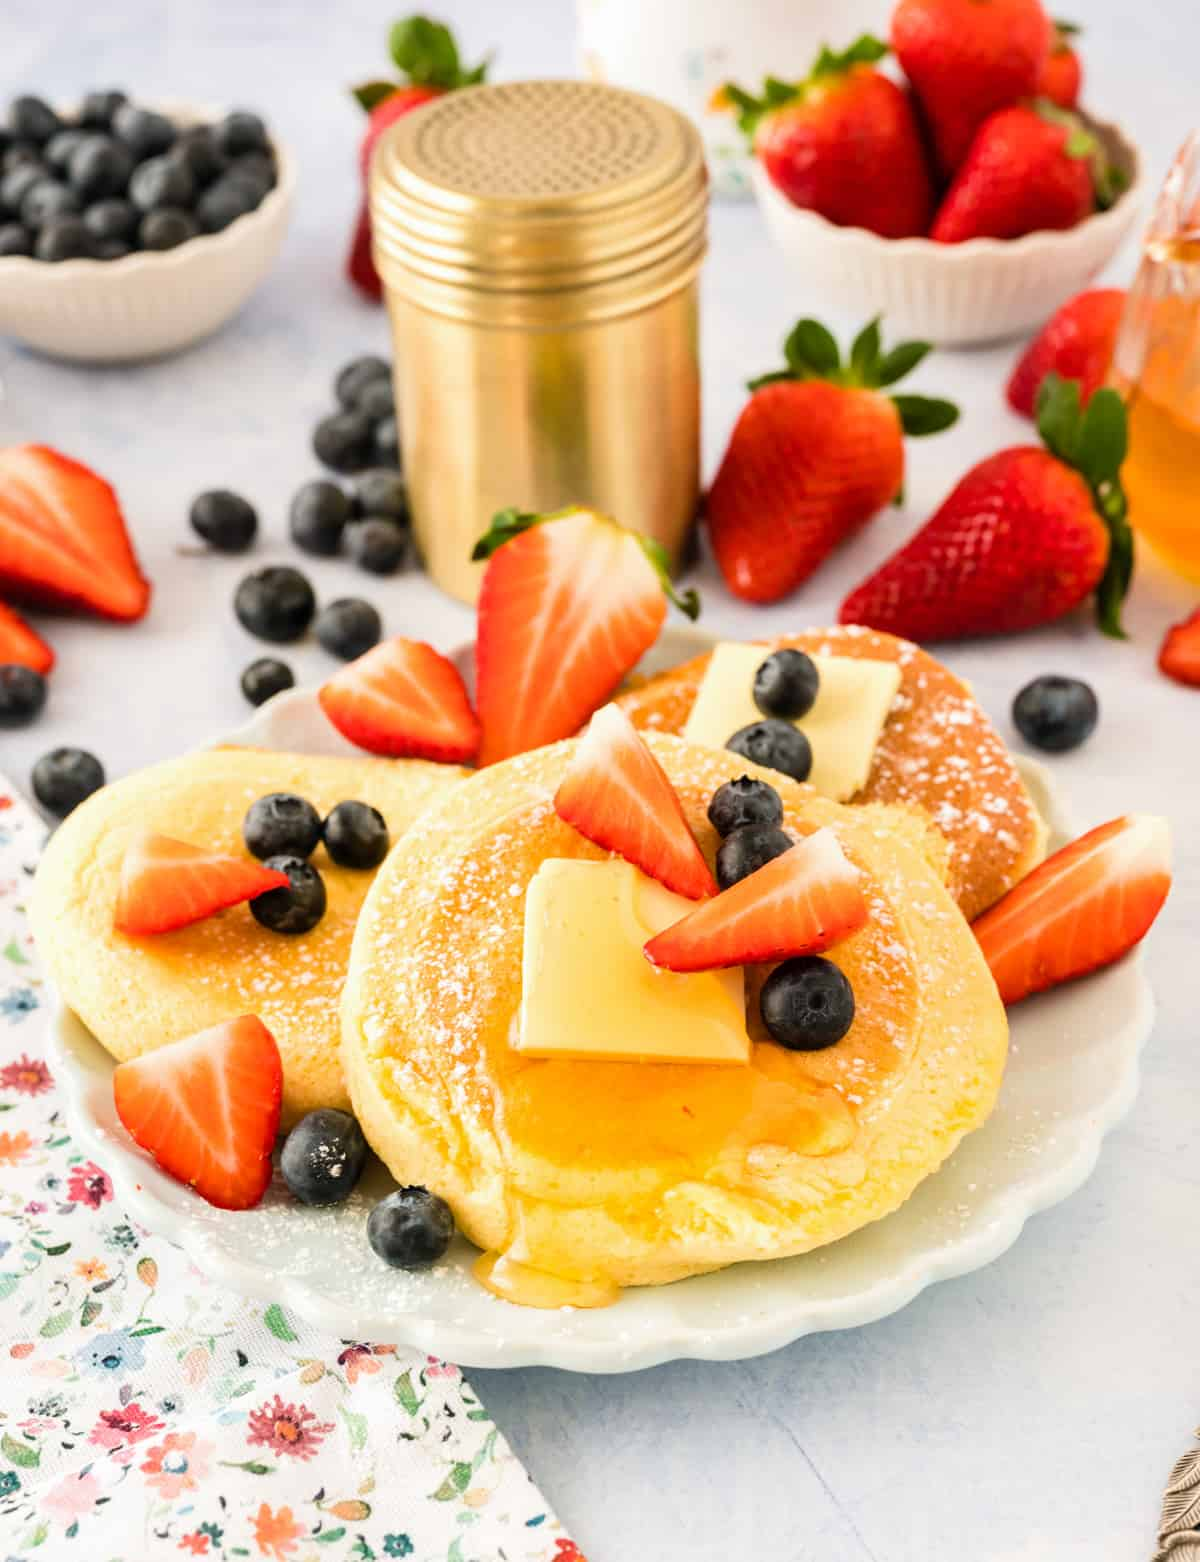 Soufflé Pancakes layered on plate with fruit and syrup